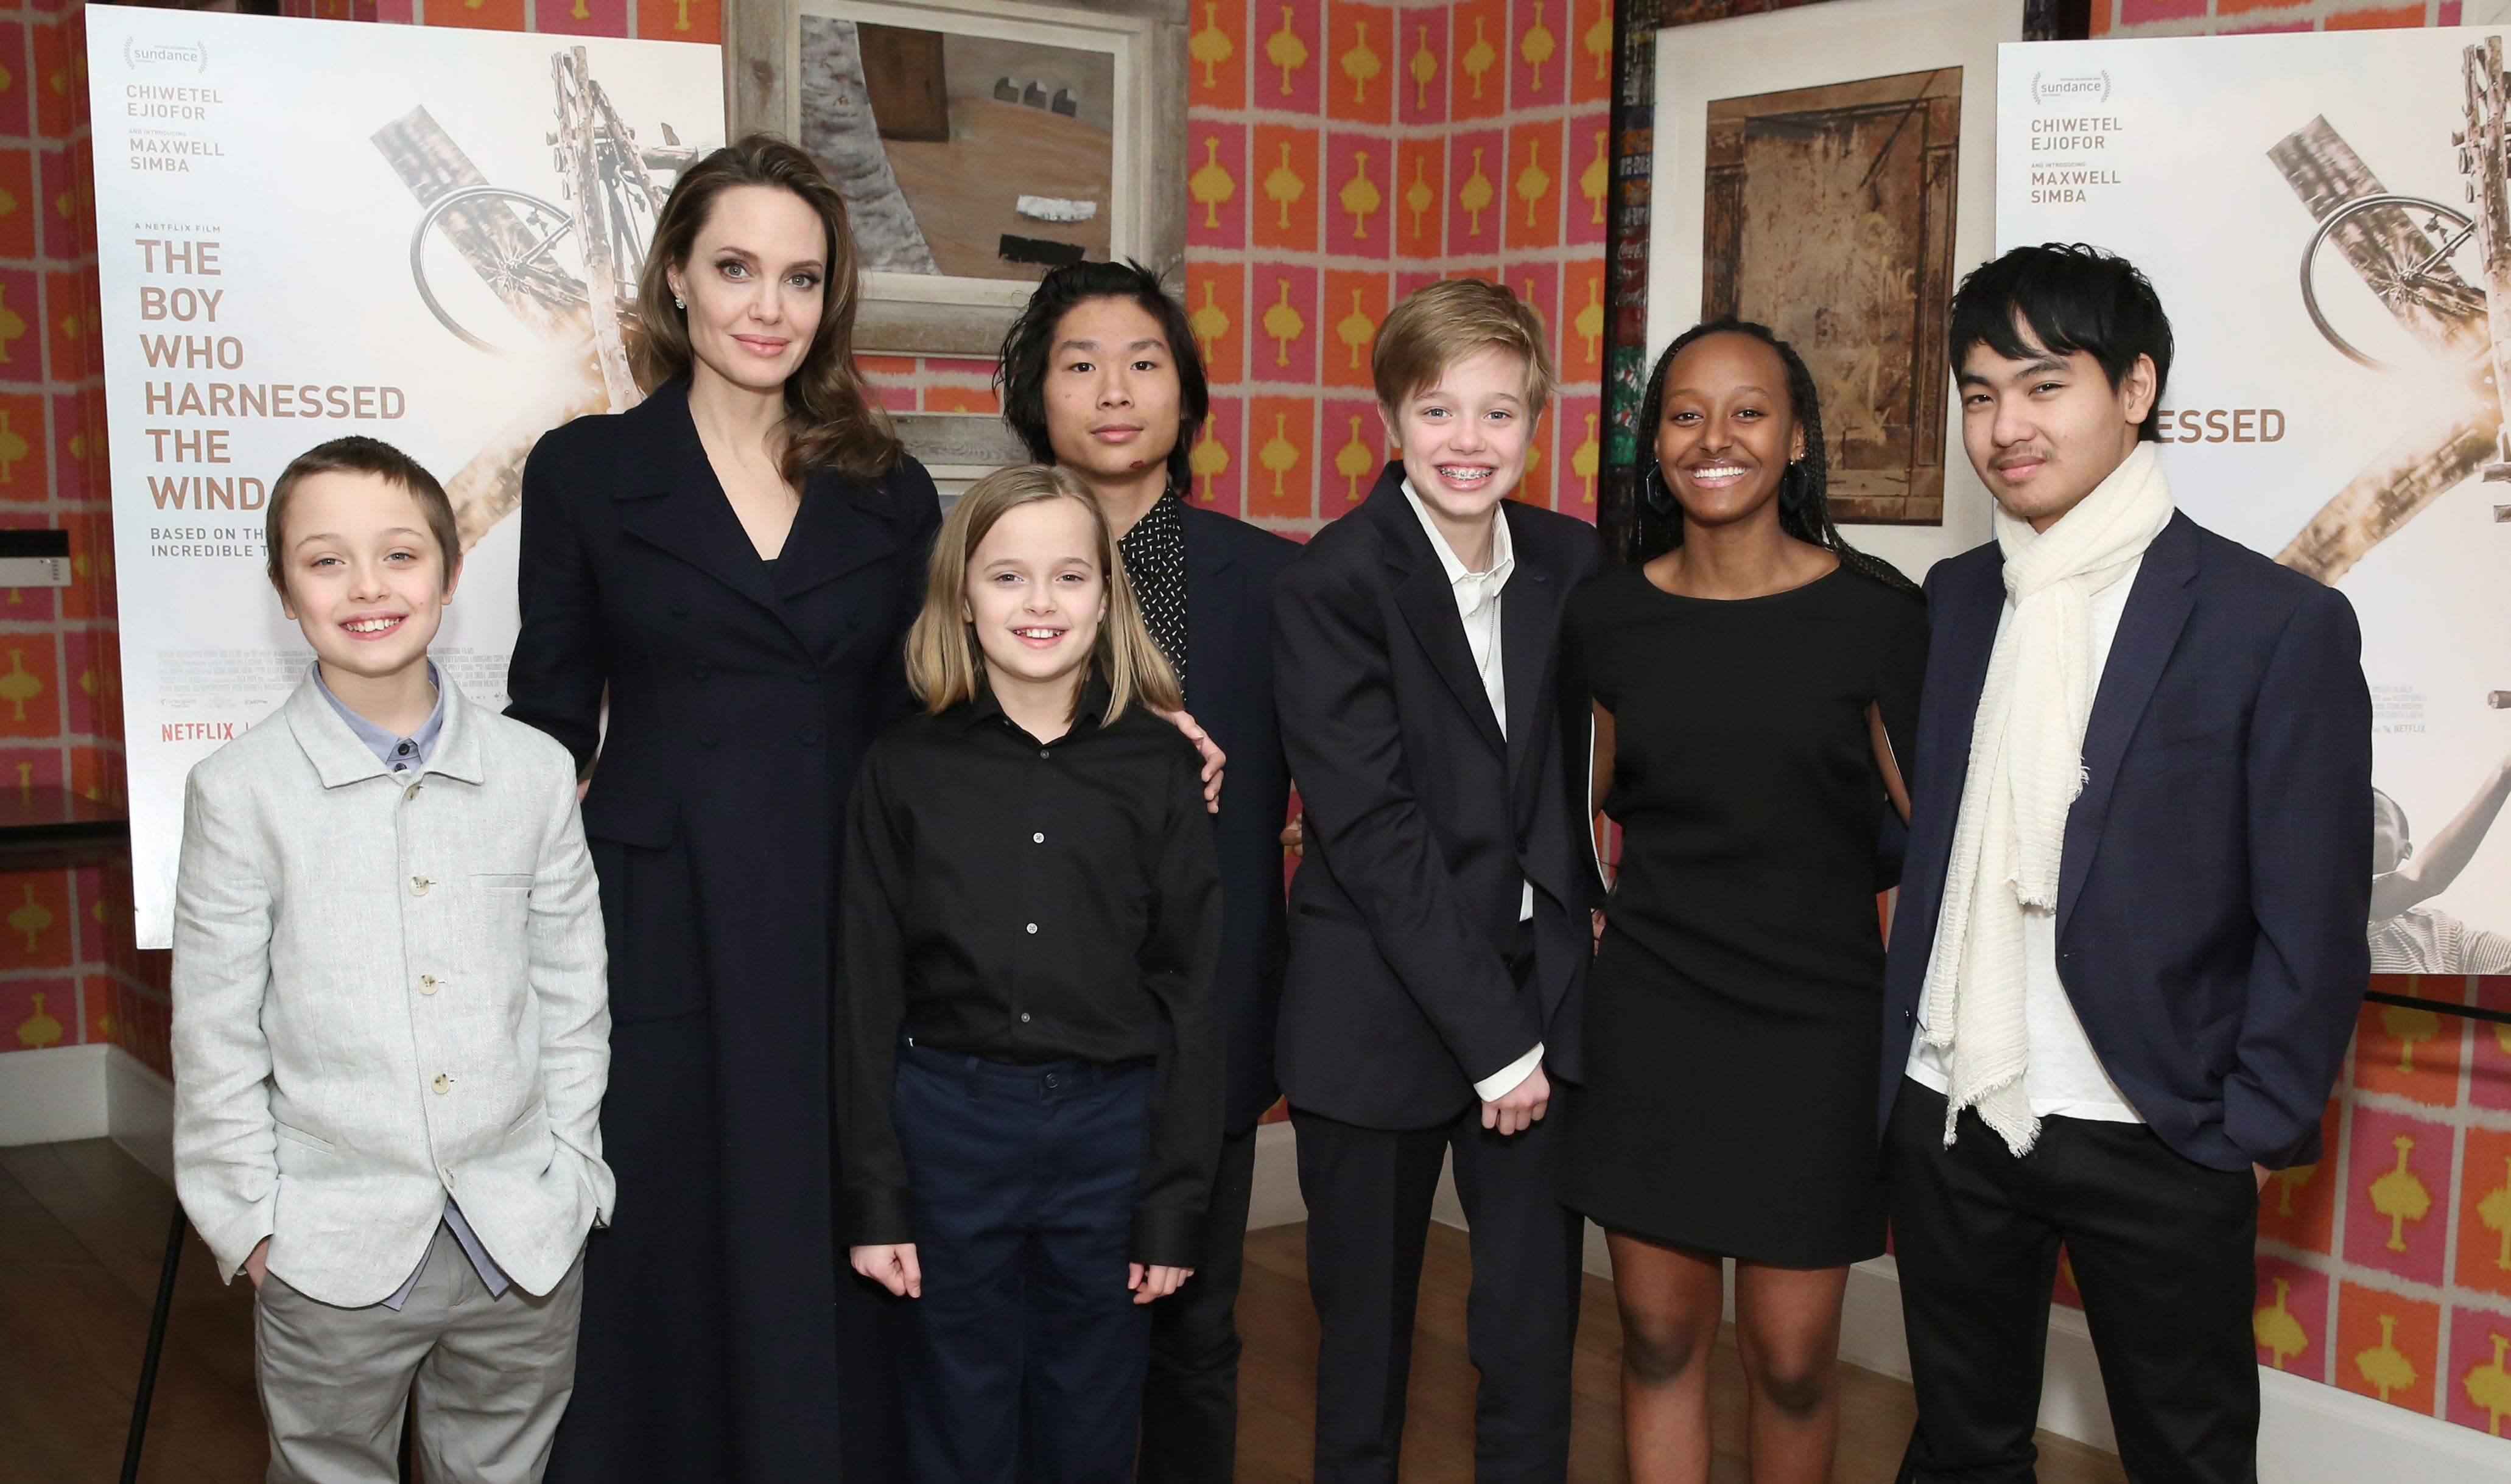 """Angelina Jolie with children Knox Leon Jolie-Pitt, Vivienne Marcheline Jolie-Pitt, Pax Thien Jolie-Pitt, Shiloh Nouvel Jolie-Pitt, Zahara Marley Jolie-Pitt and Maddox Chivan Jolie-Pitt attend """"The Boy Who Harnessed The Wind"""" Special Screening at Crosby Street Hotel on February 25, 2019 in New York City. 